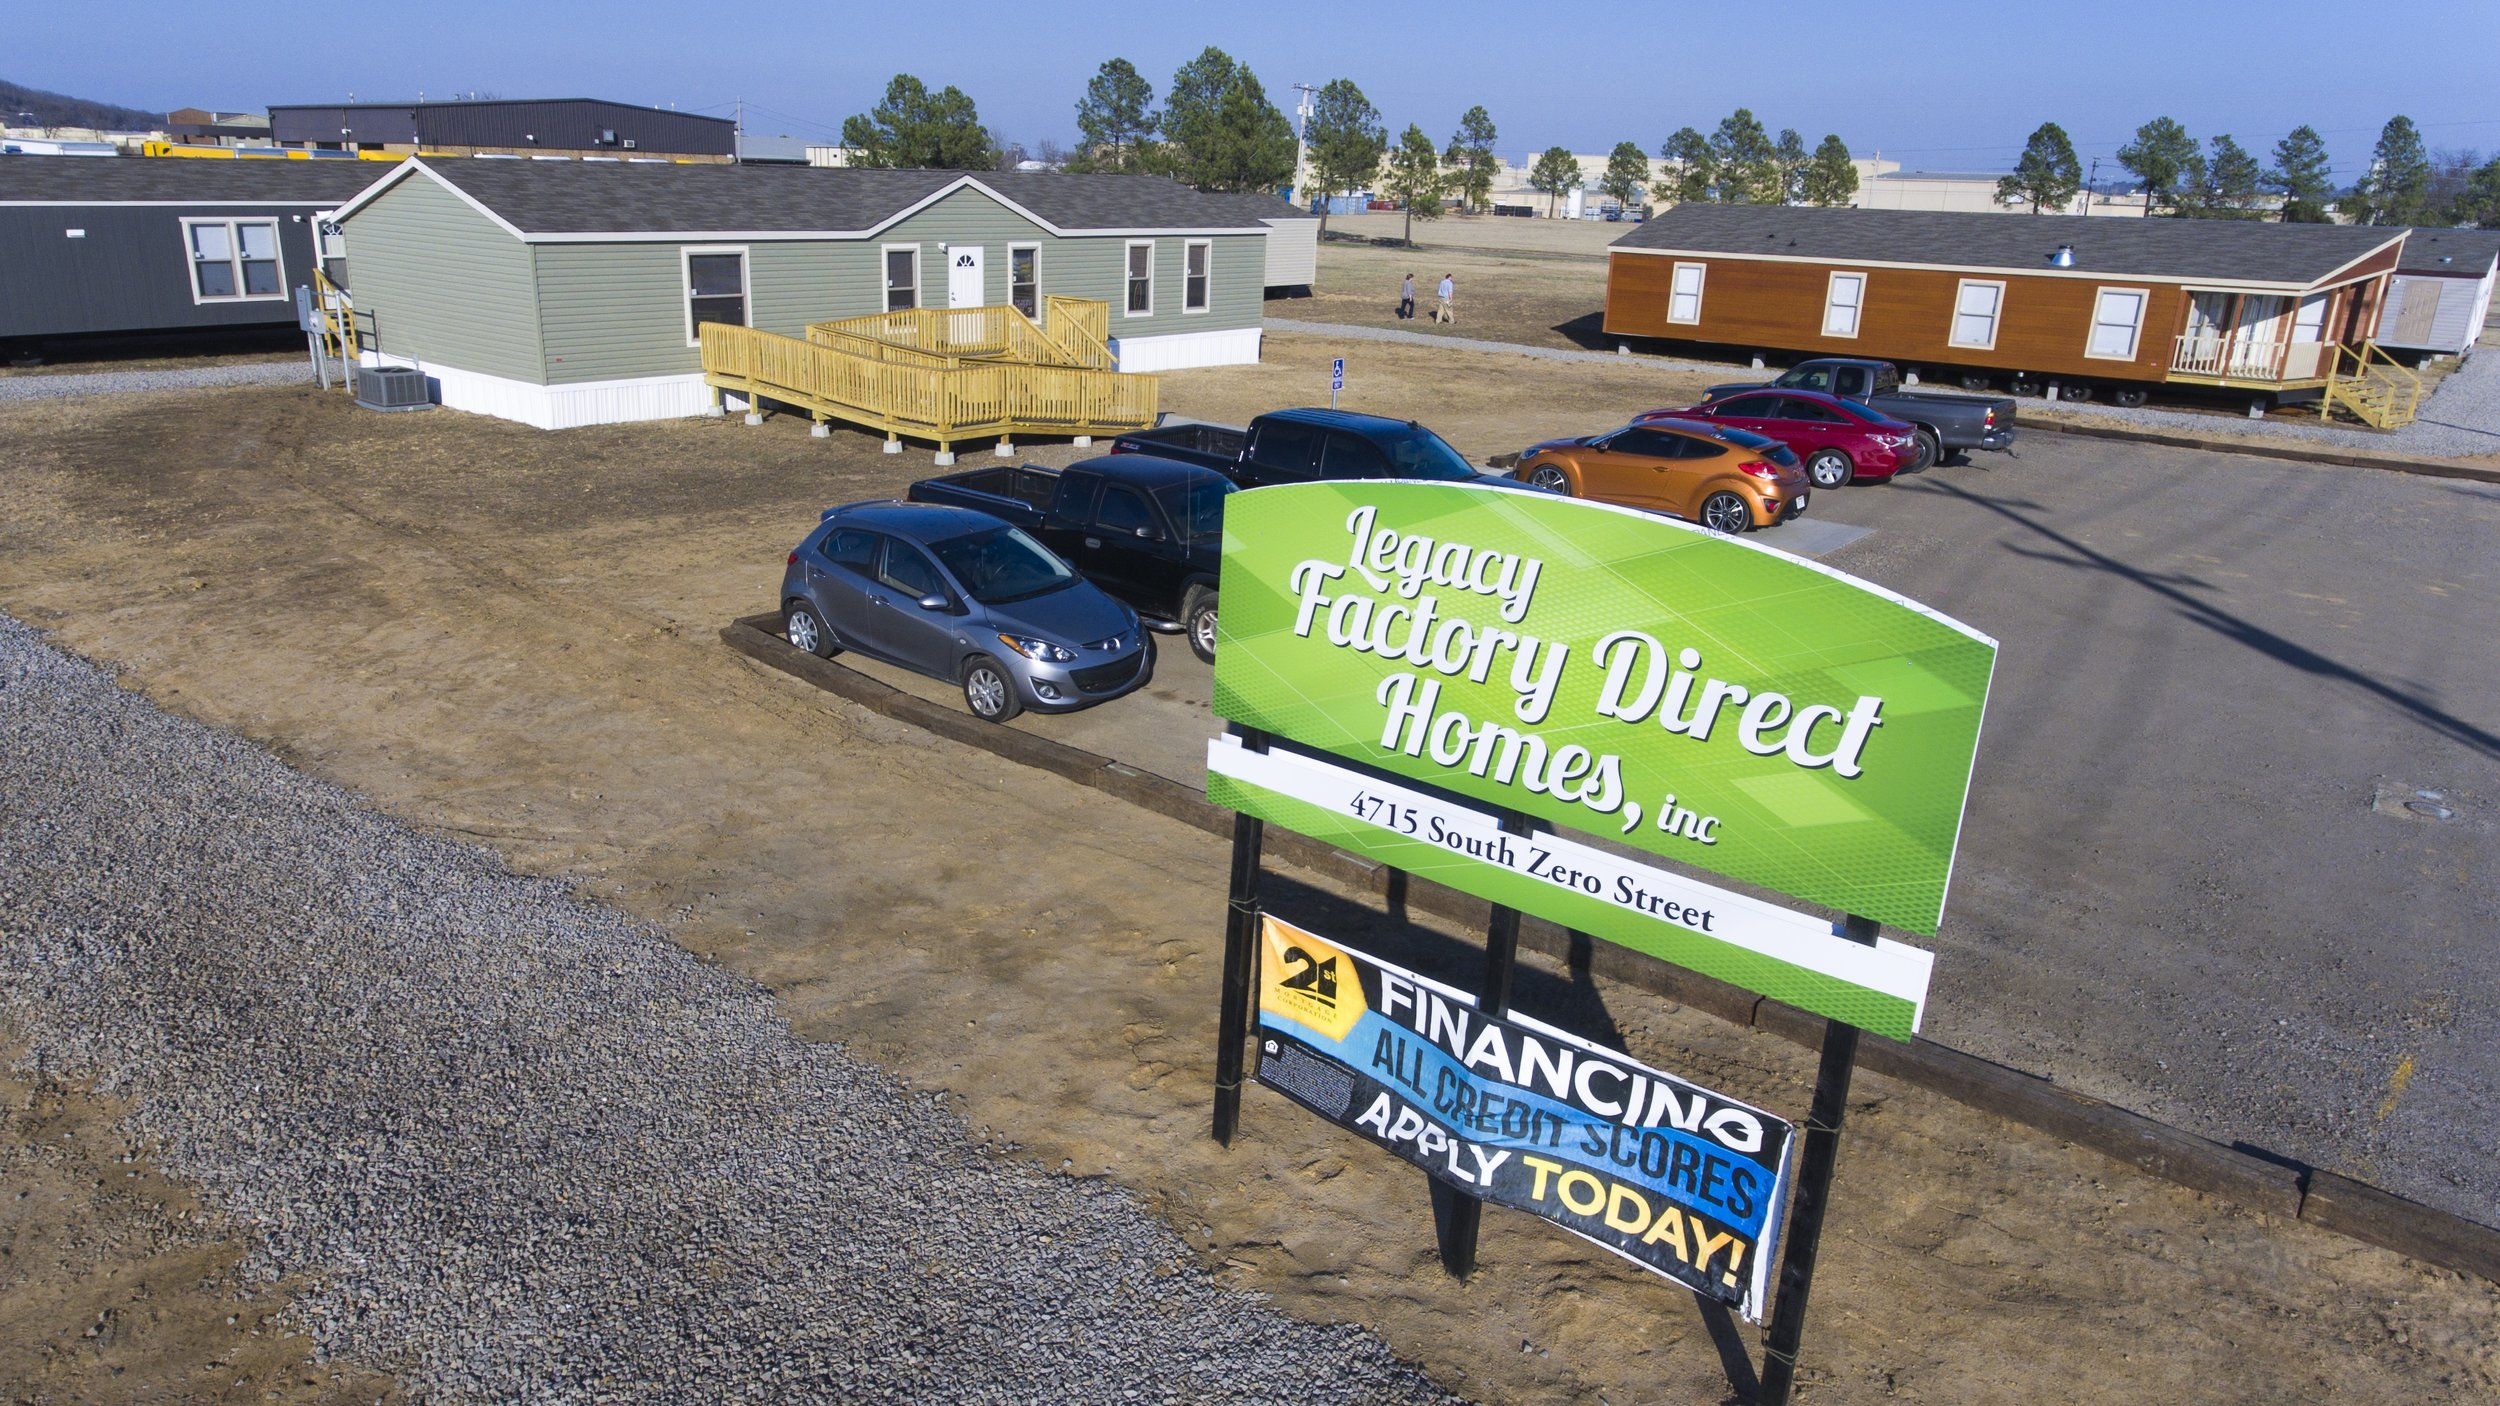 Legacy Factory Direct Homes on warehouse direct, furniture direct, cars direct, appliance direct, object direct,